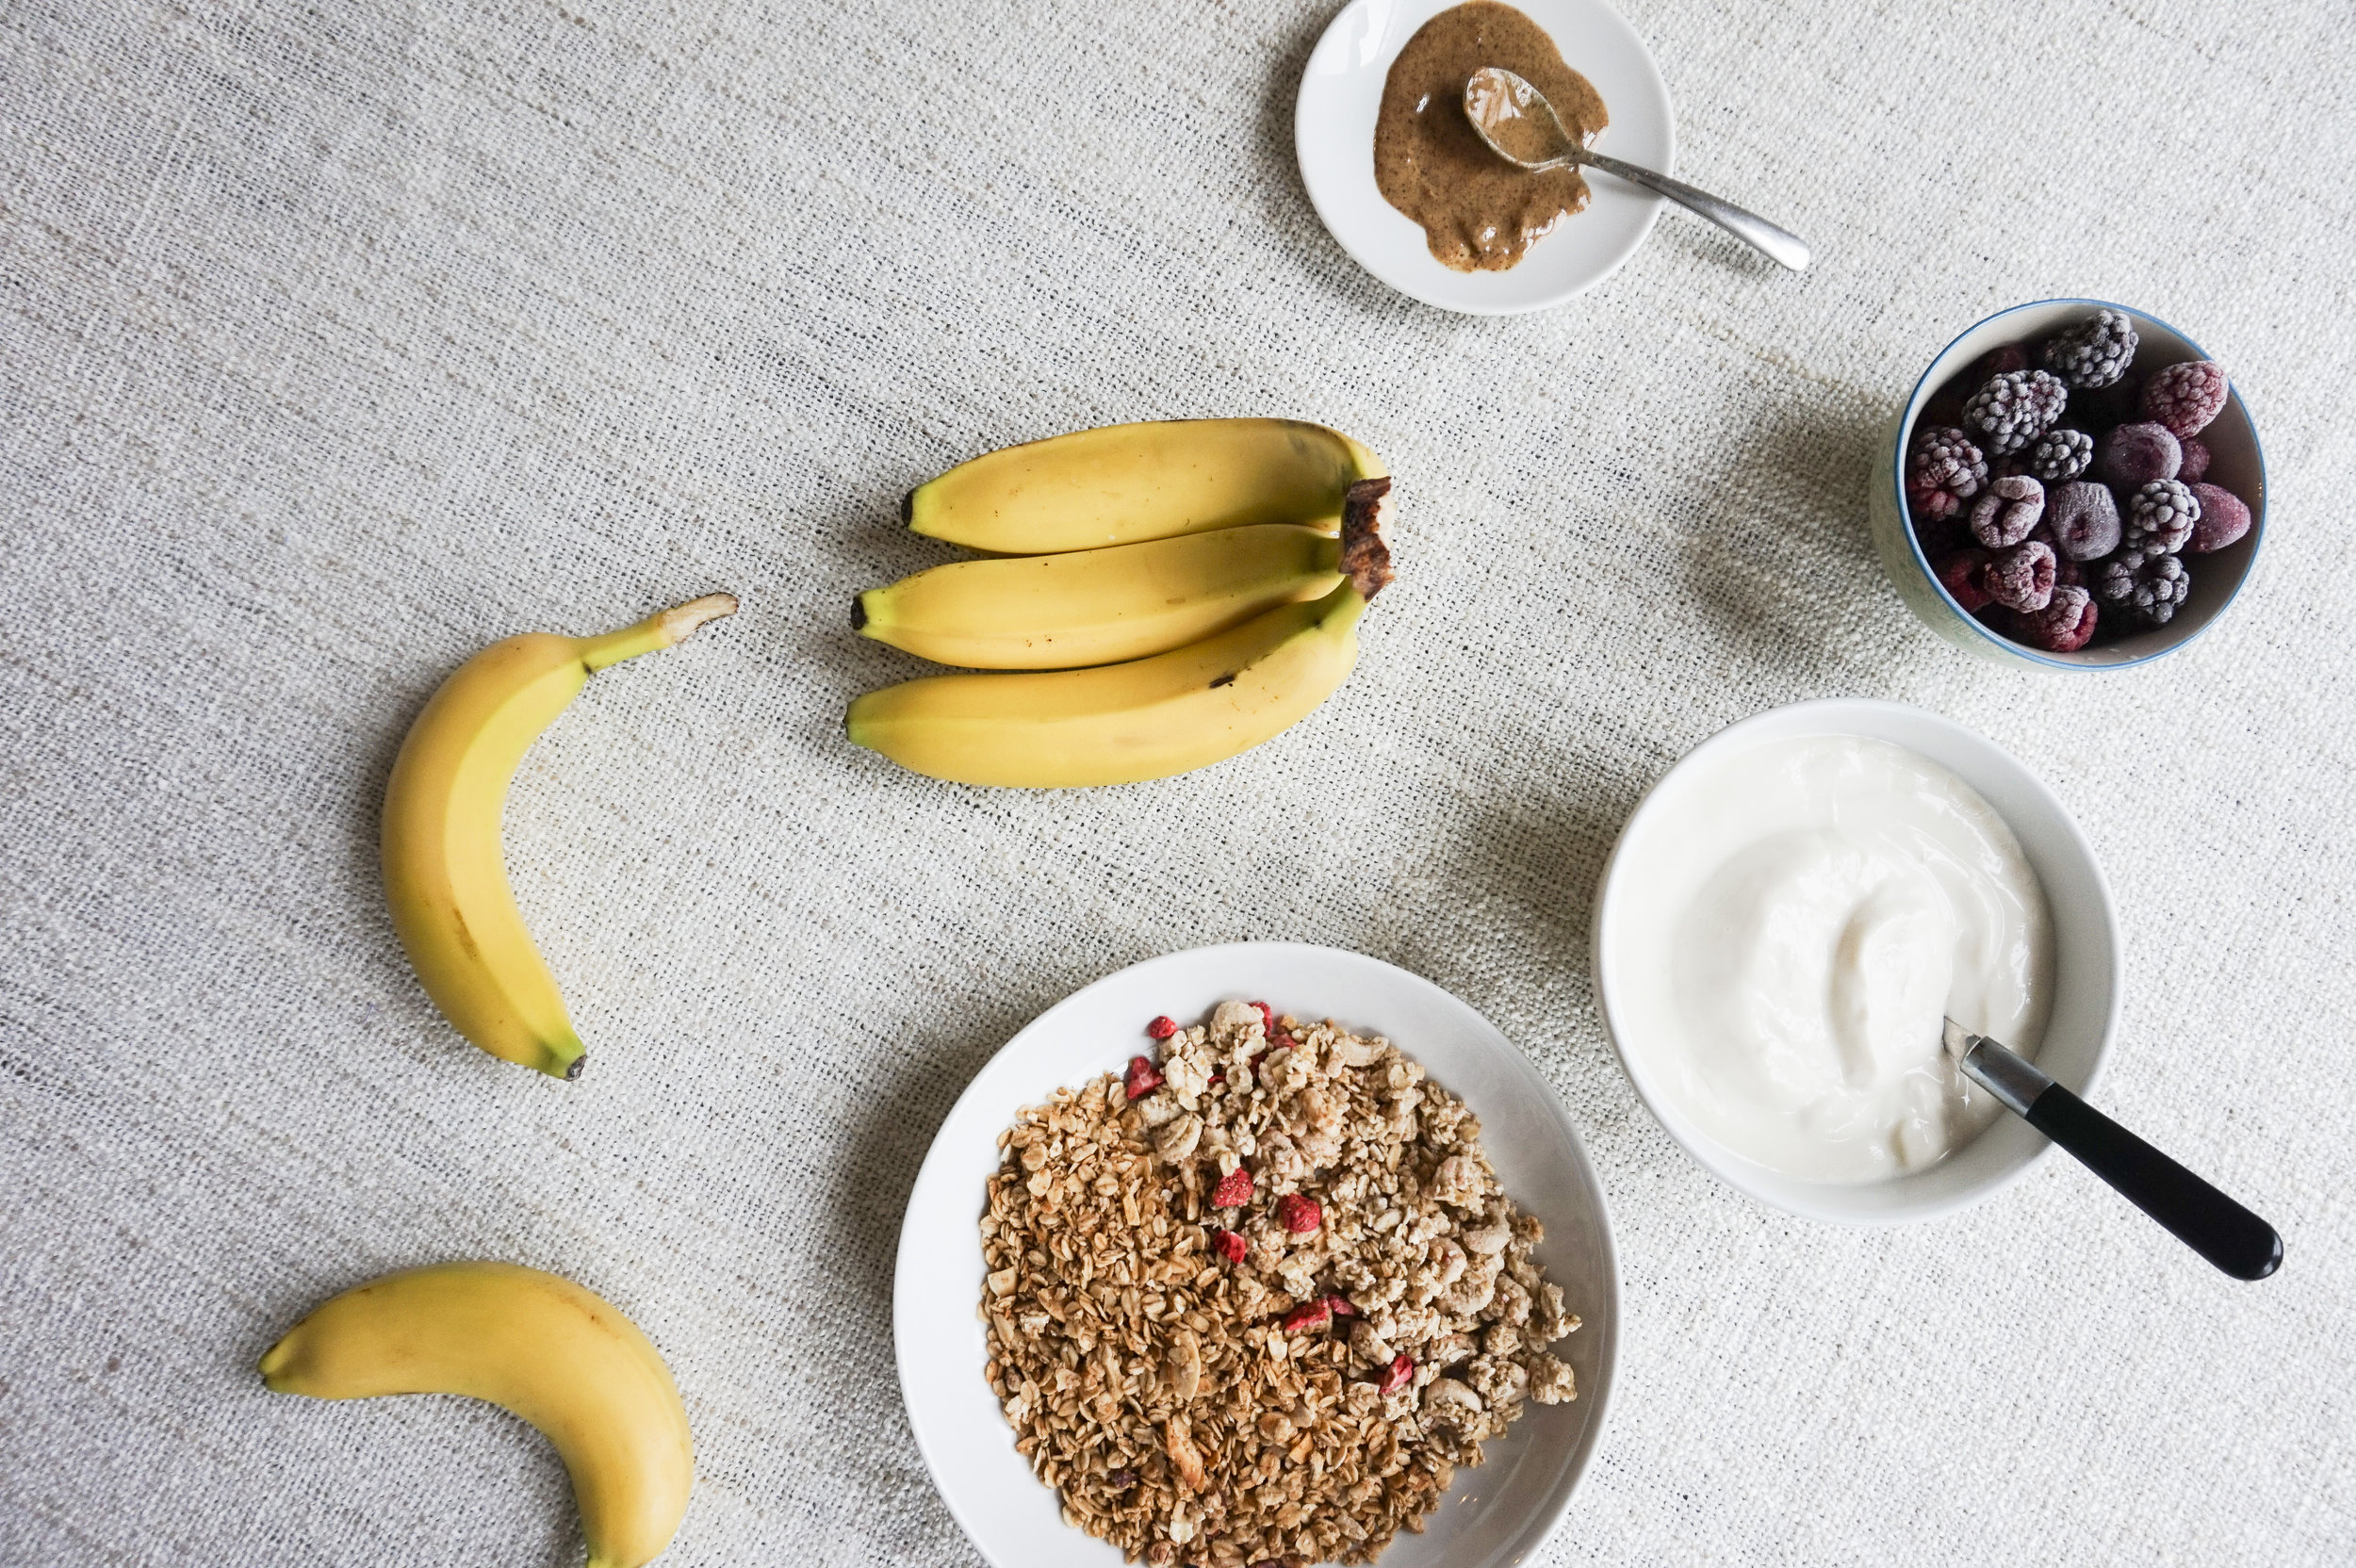 The ingredient list is simple: 1. Fresh Bananas 2. Vegan yogurt or yogurt of your choice (if you want to eat this as a dessert, ice cream will do!) 3. Granola of your choice! (we used  Spoon Cereal  &  Jordans Cereals ) 4. Fresh berries or frozen berries 5. Almond butter